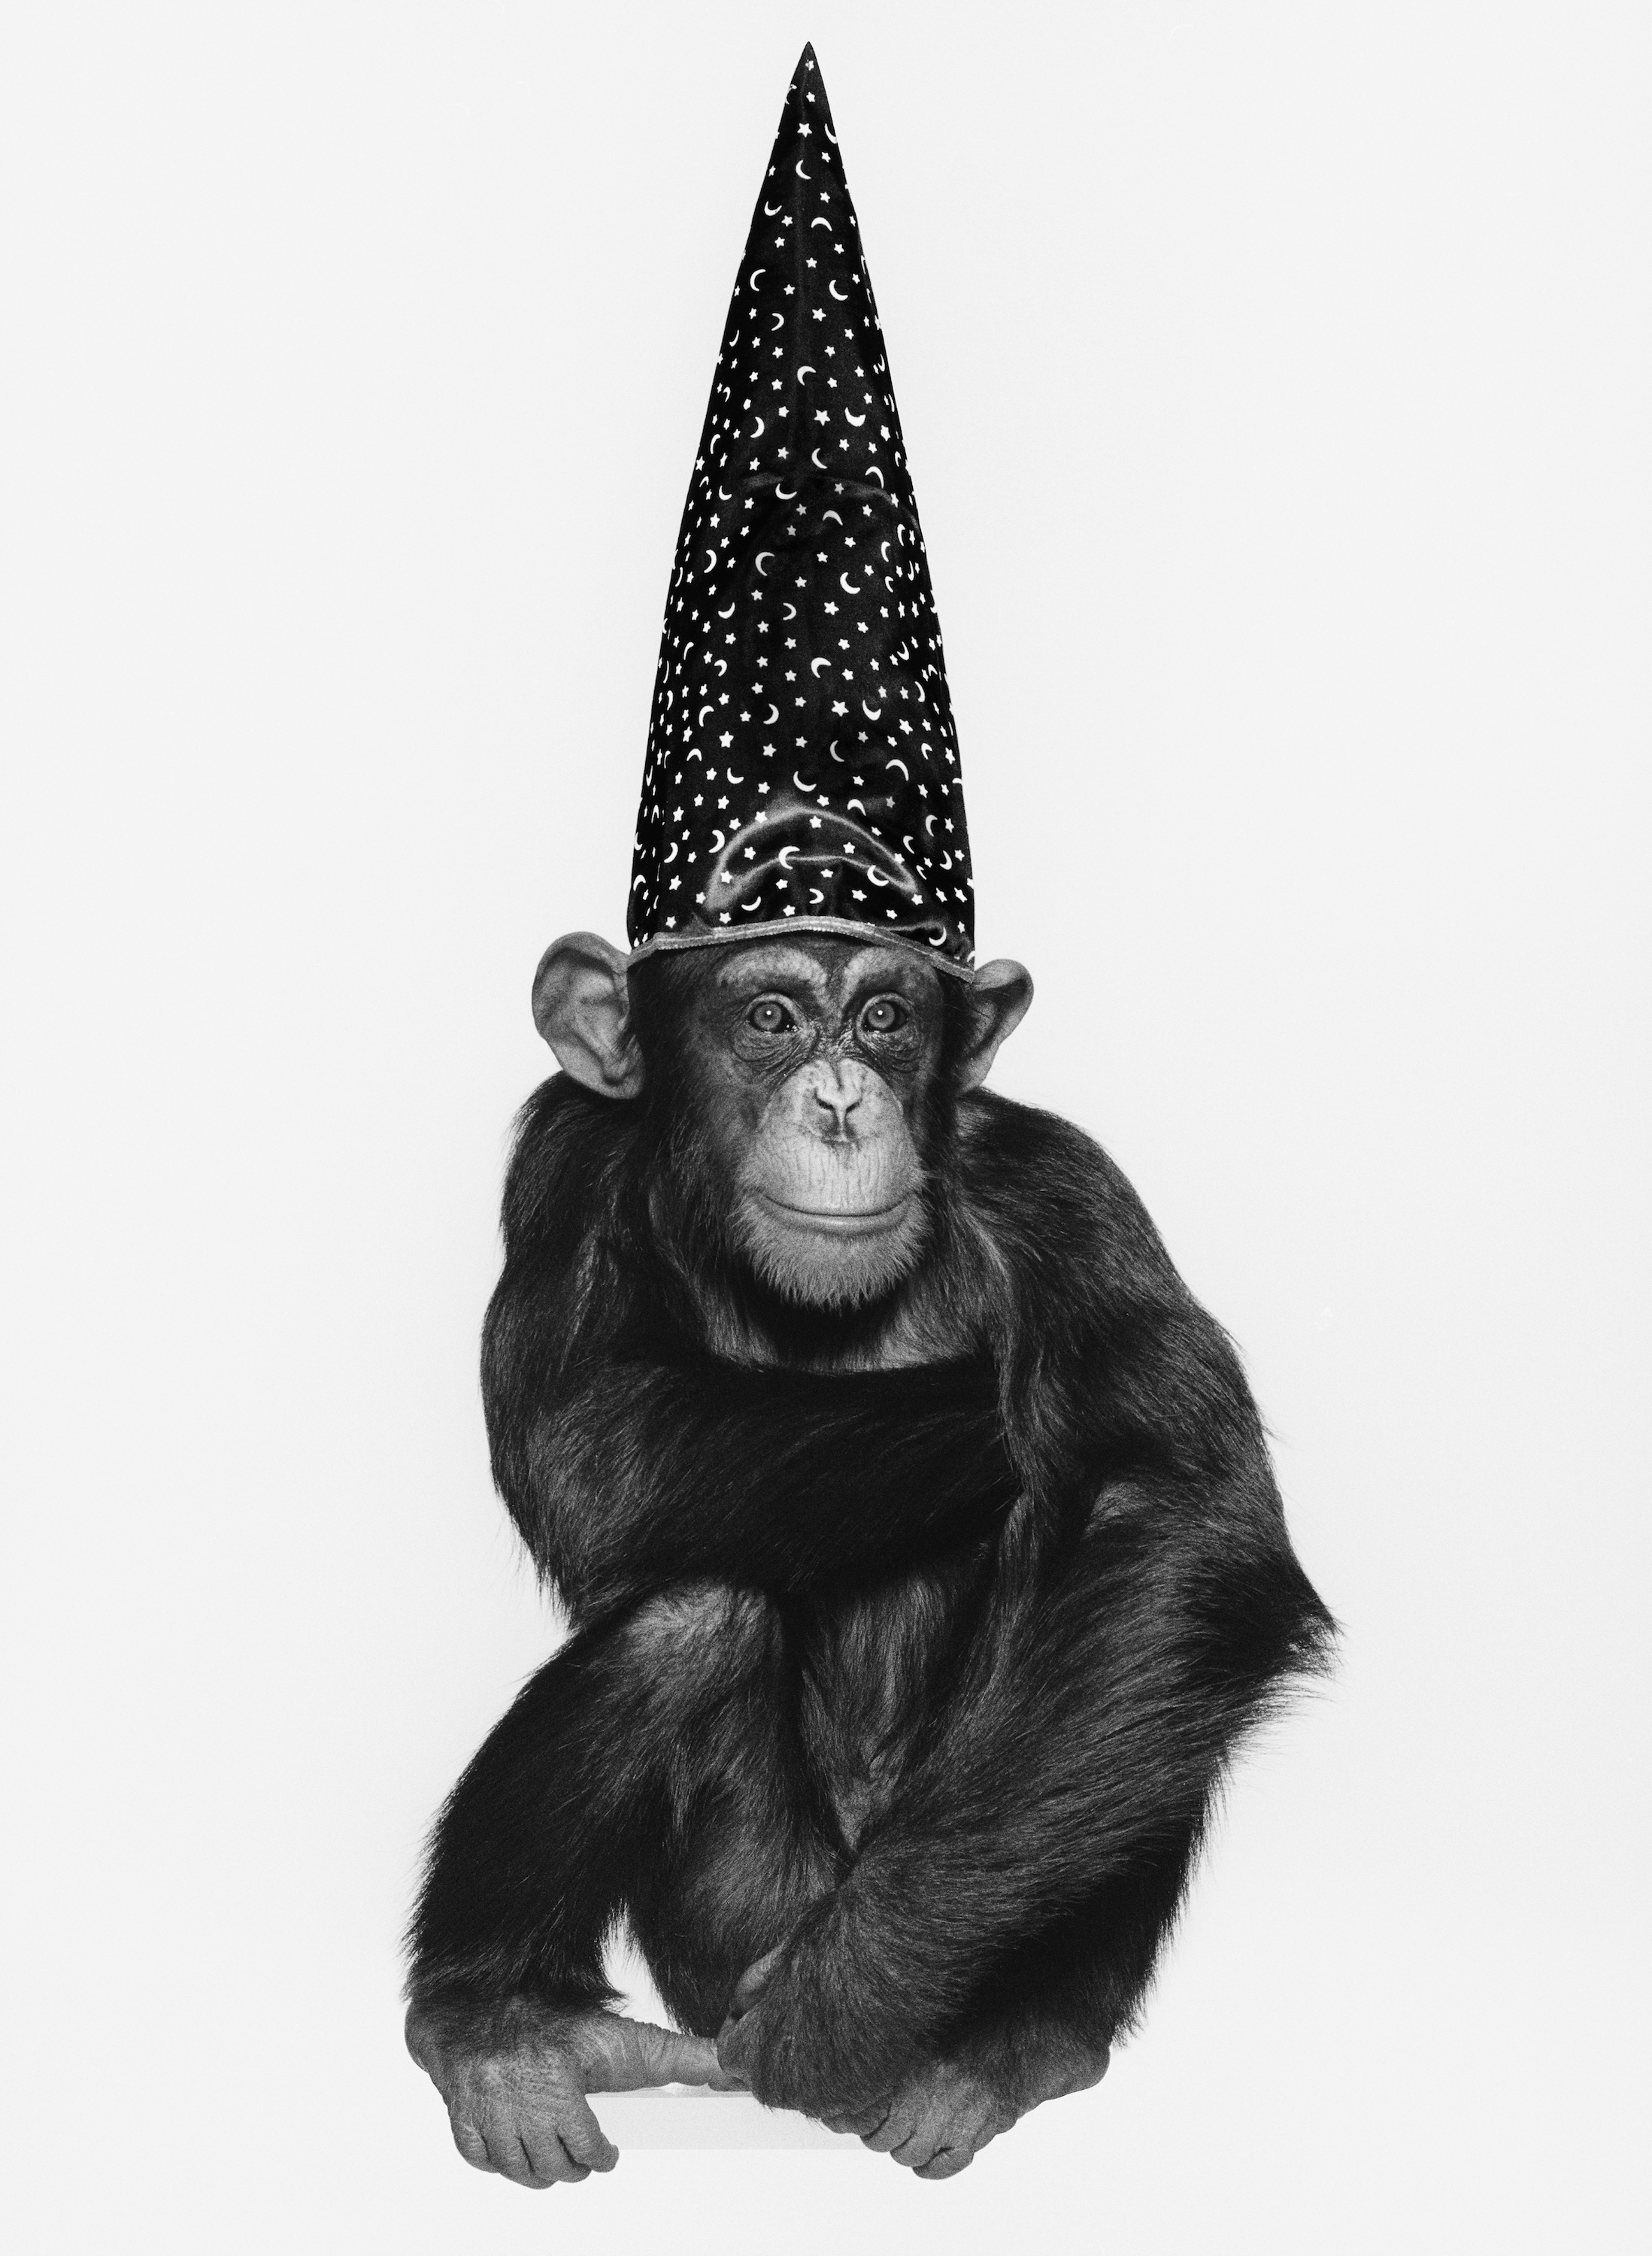 Monkey with hat by Albert Watson  Edition 10, Silver Gelatin, 51x61cms,  Edition 10 (archival pigment), 107x142cms,